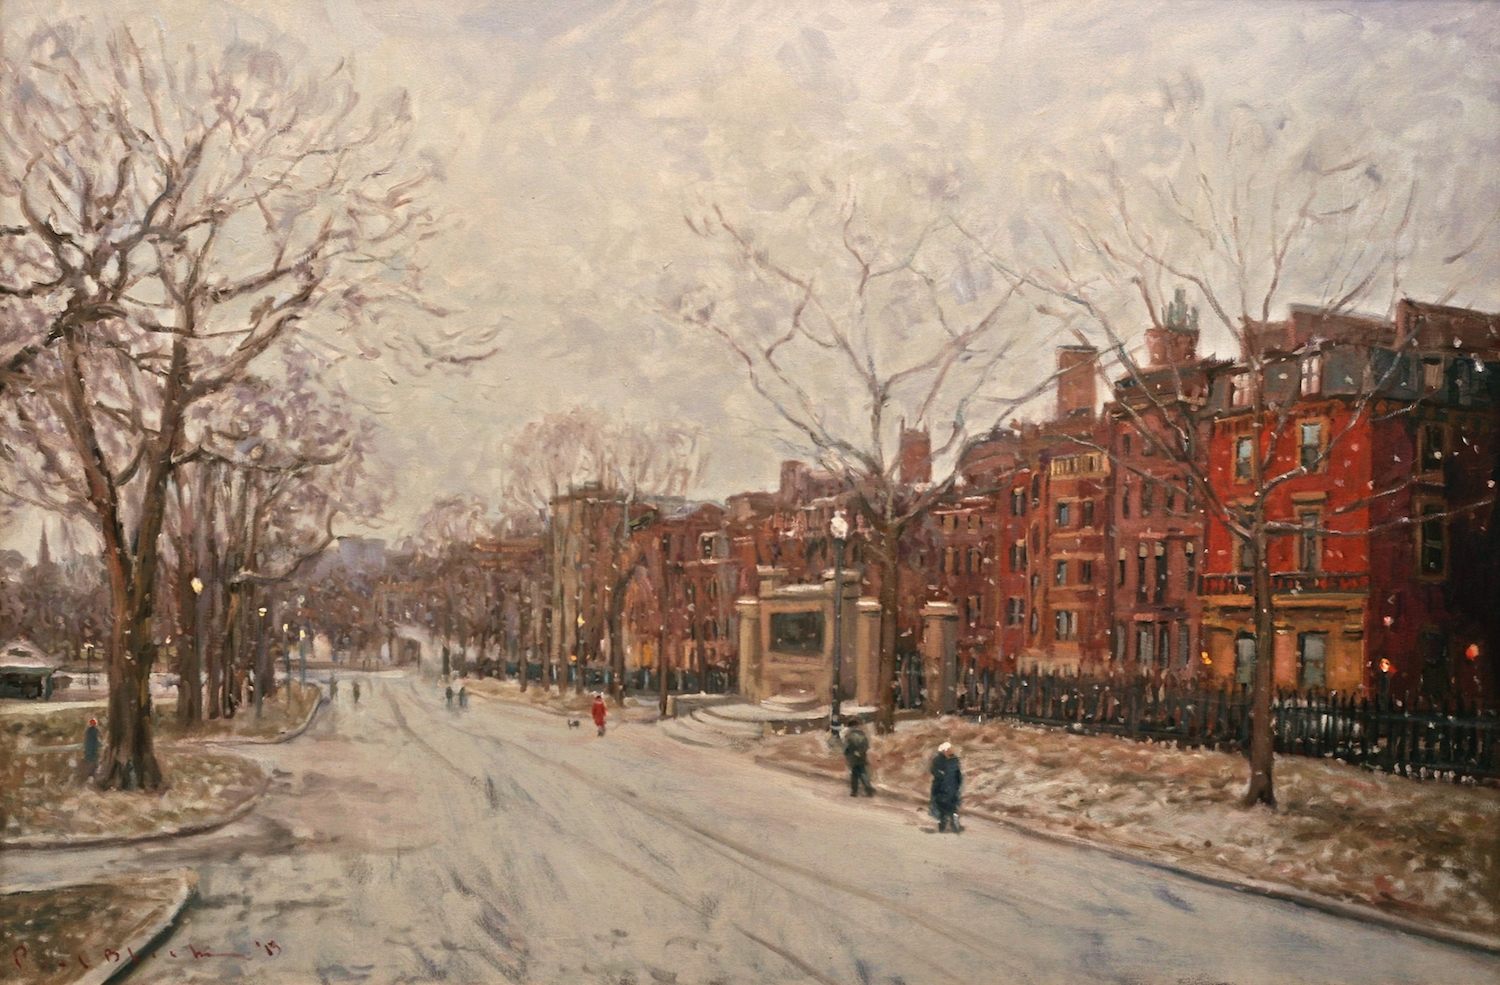 Boston Common by Paul Black | Page Waterman, Gallery & Framing